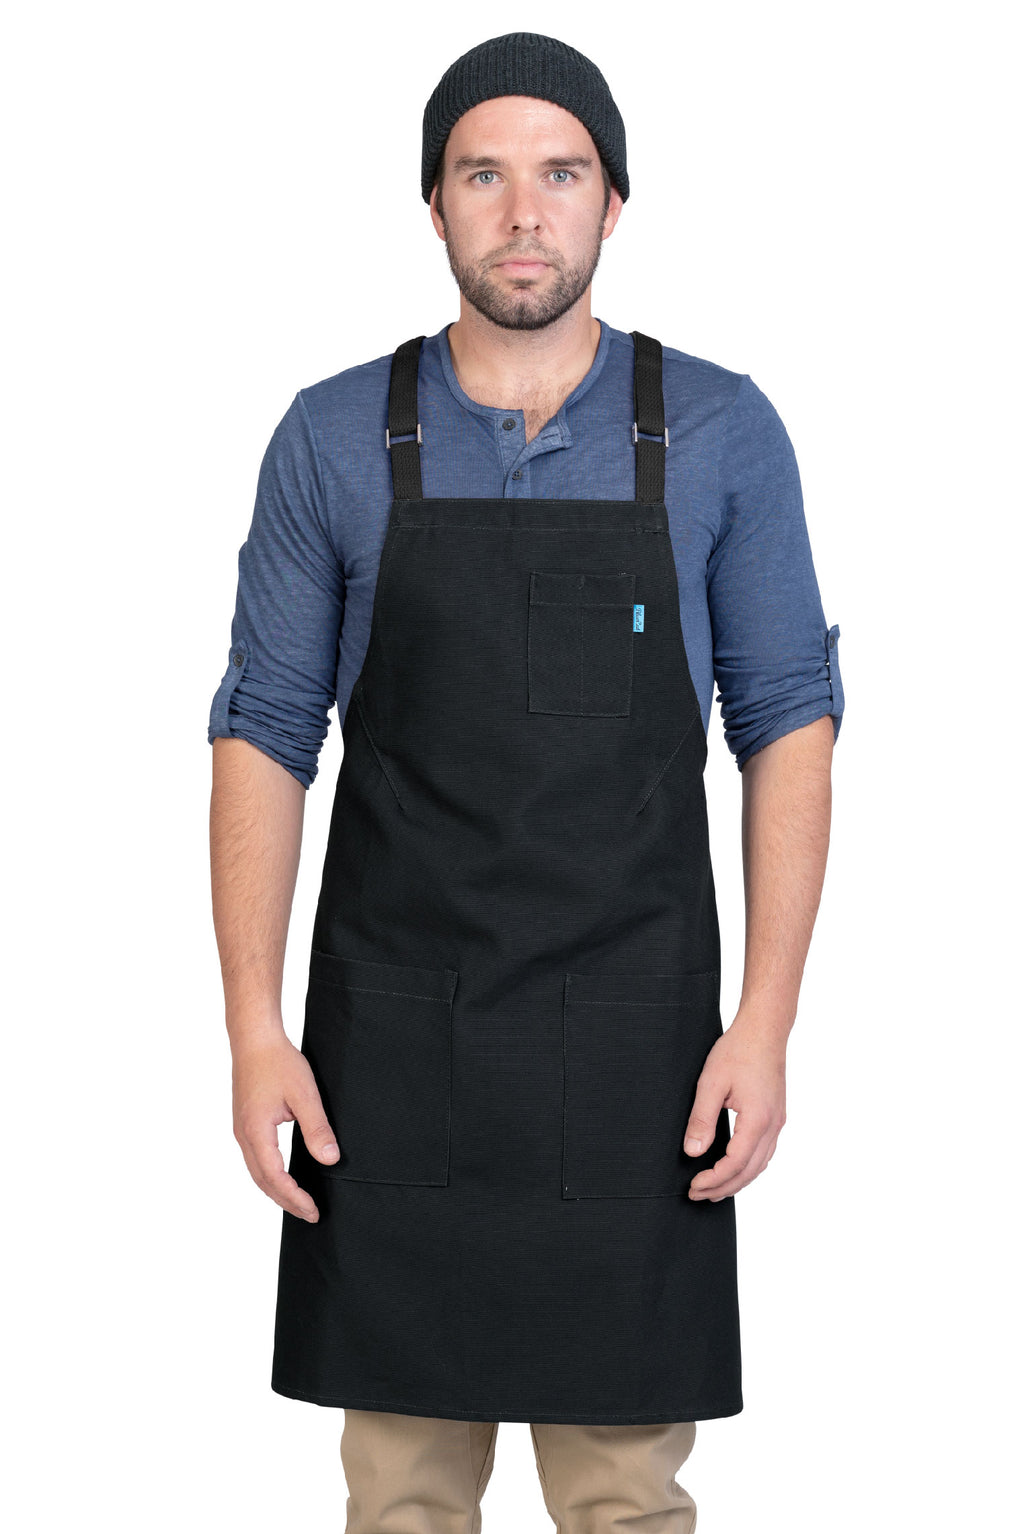 LUCCA CROSS BACK APRON BLACK